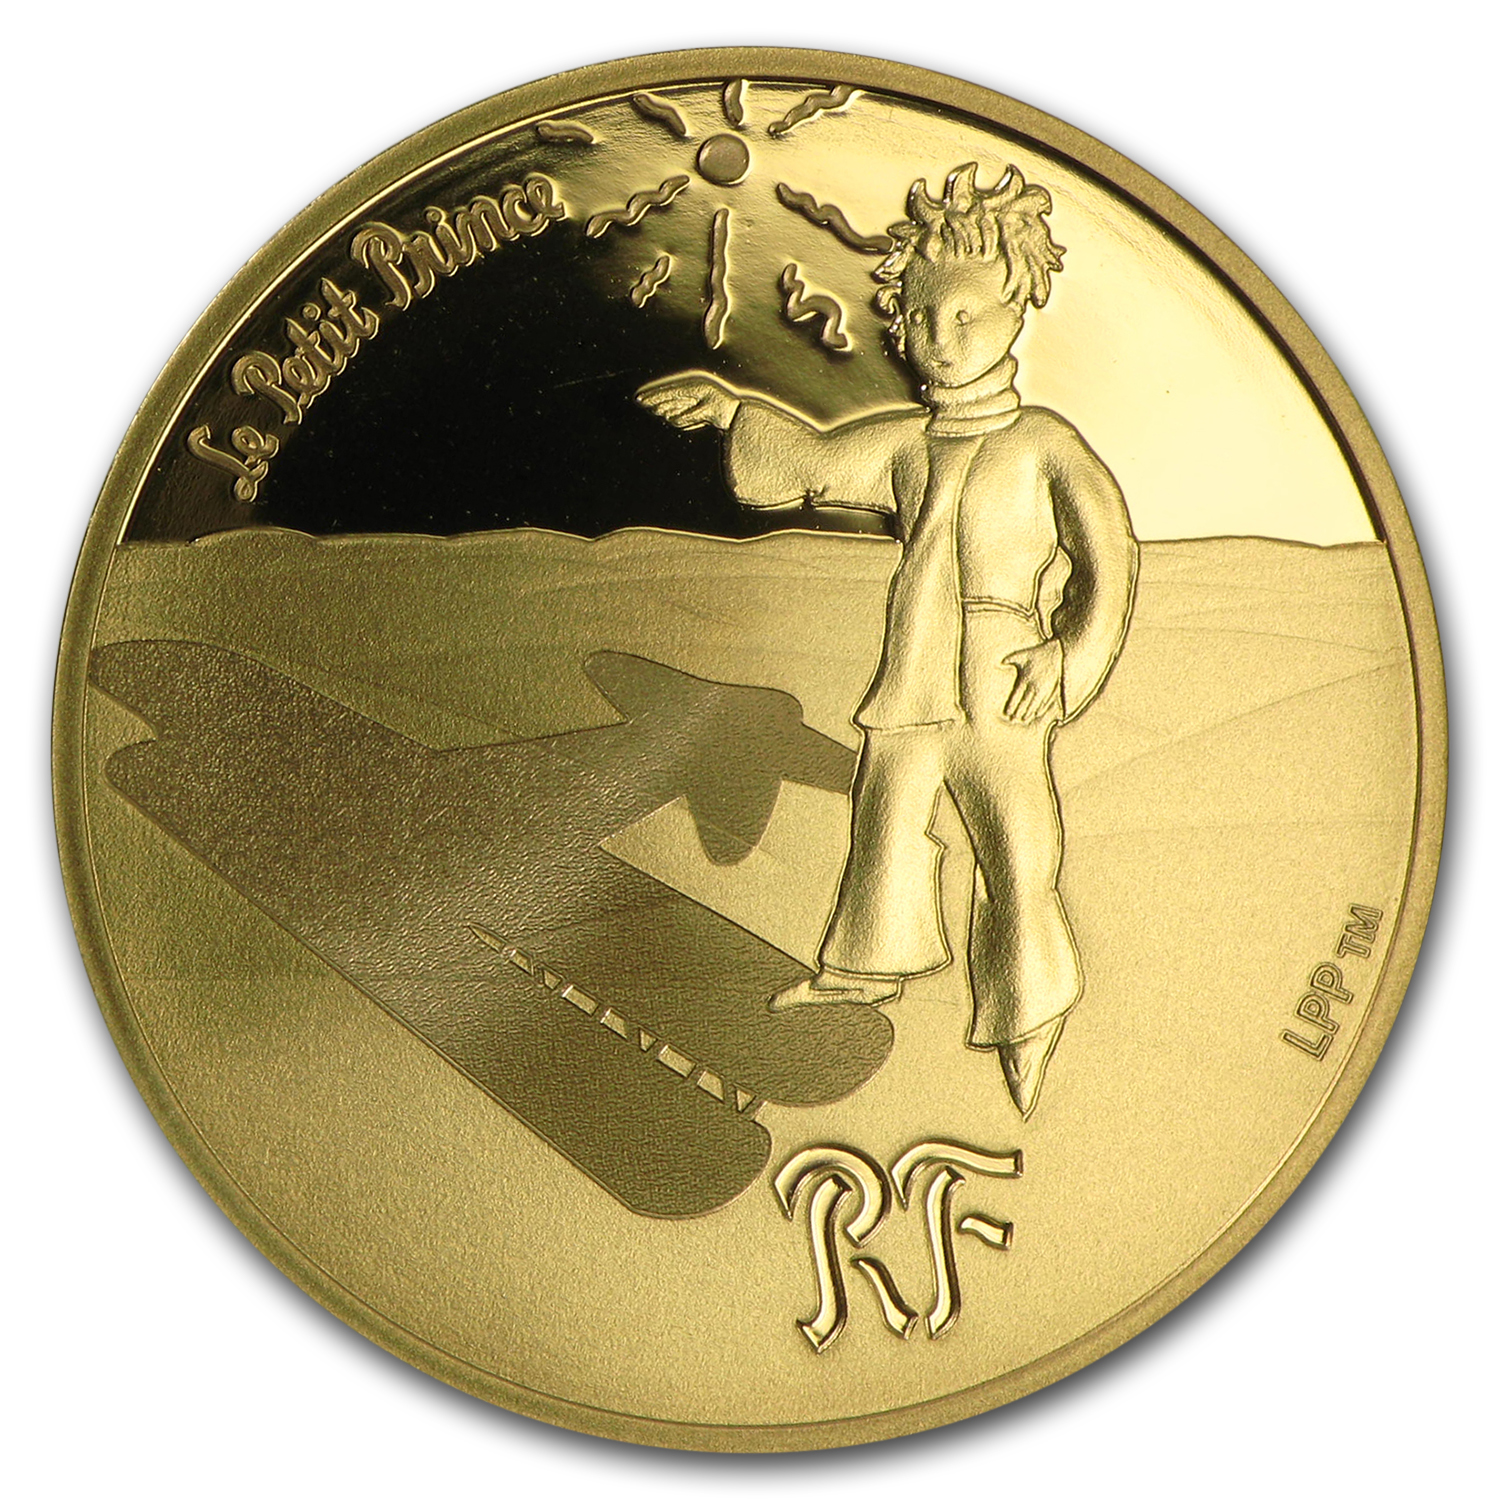 2015 France 1/4 oz Proof Gold €50 The Little Prince (Guide)